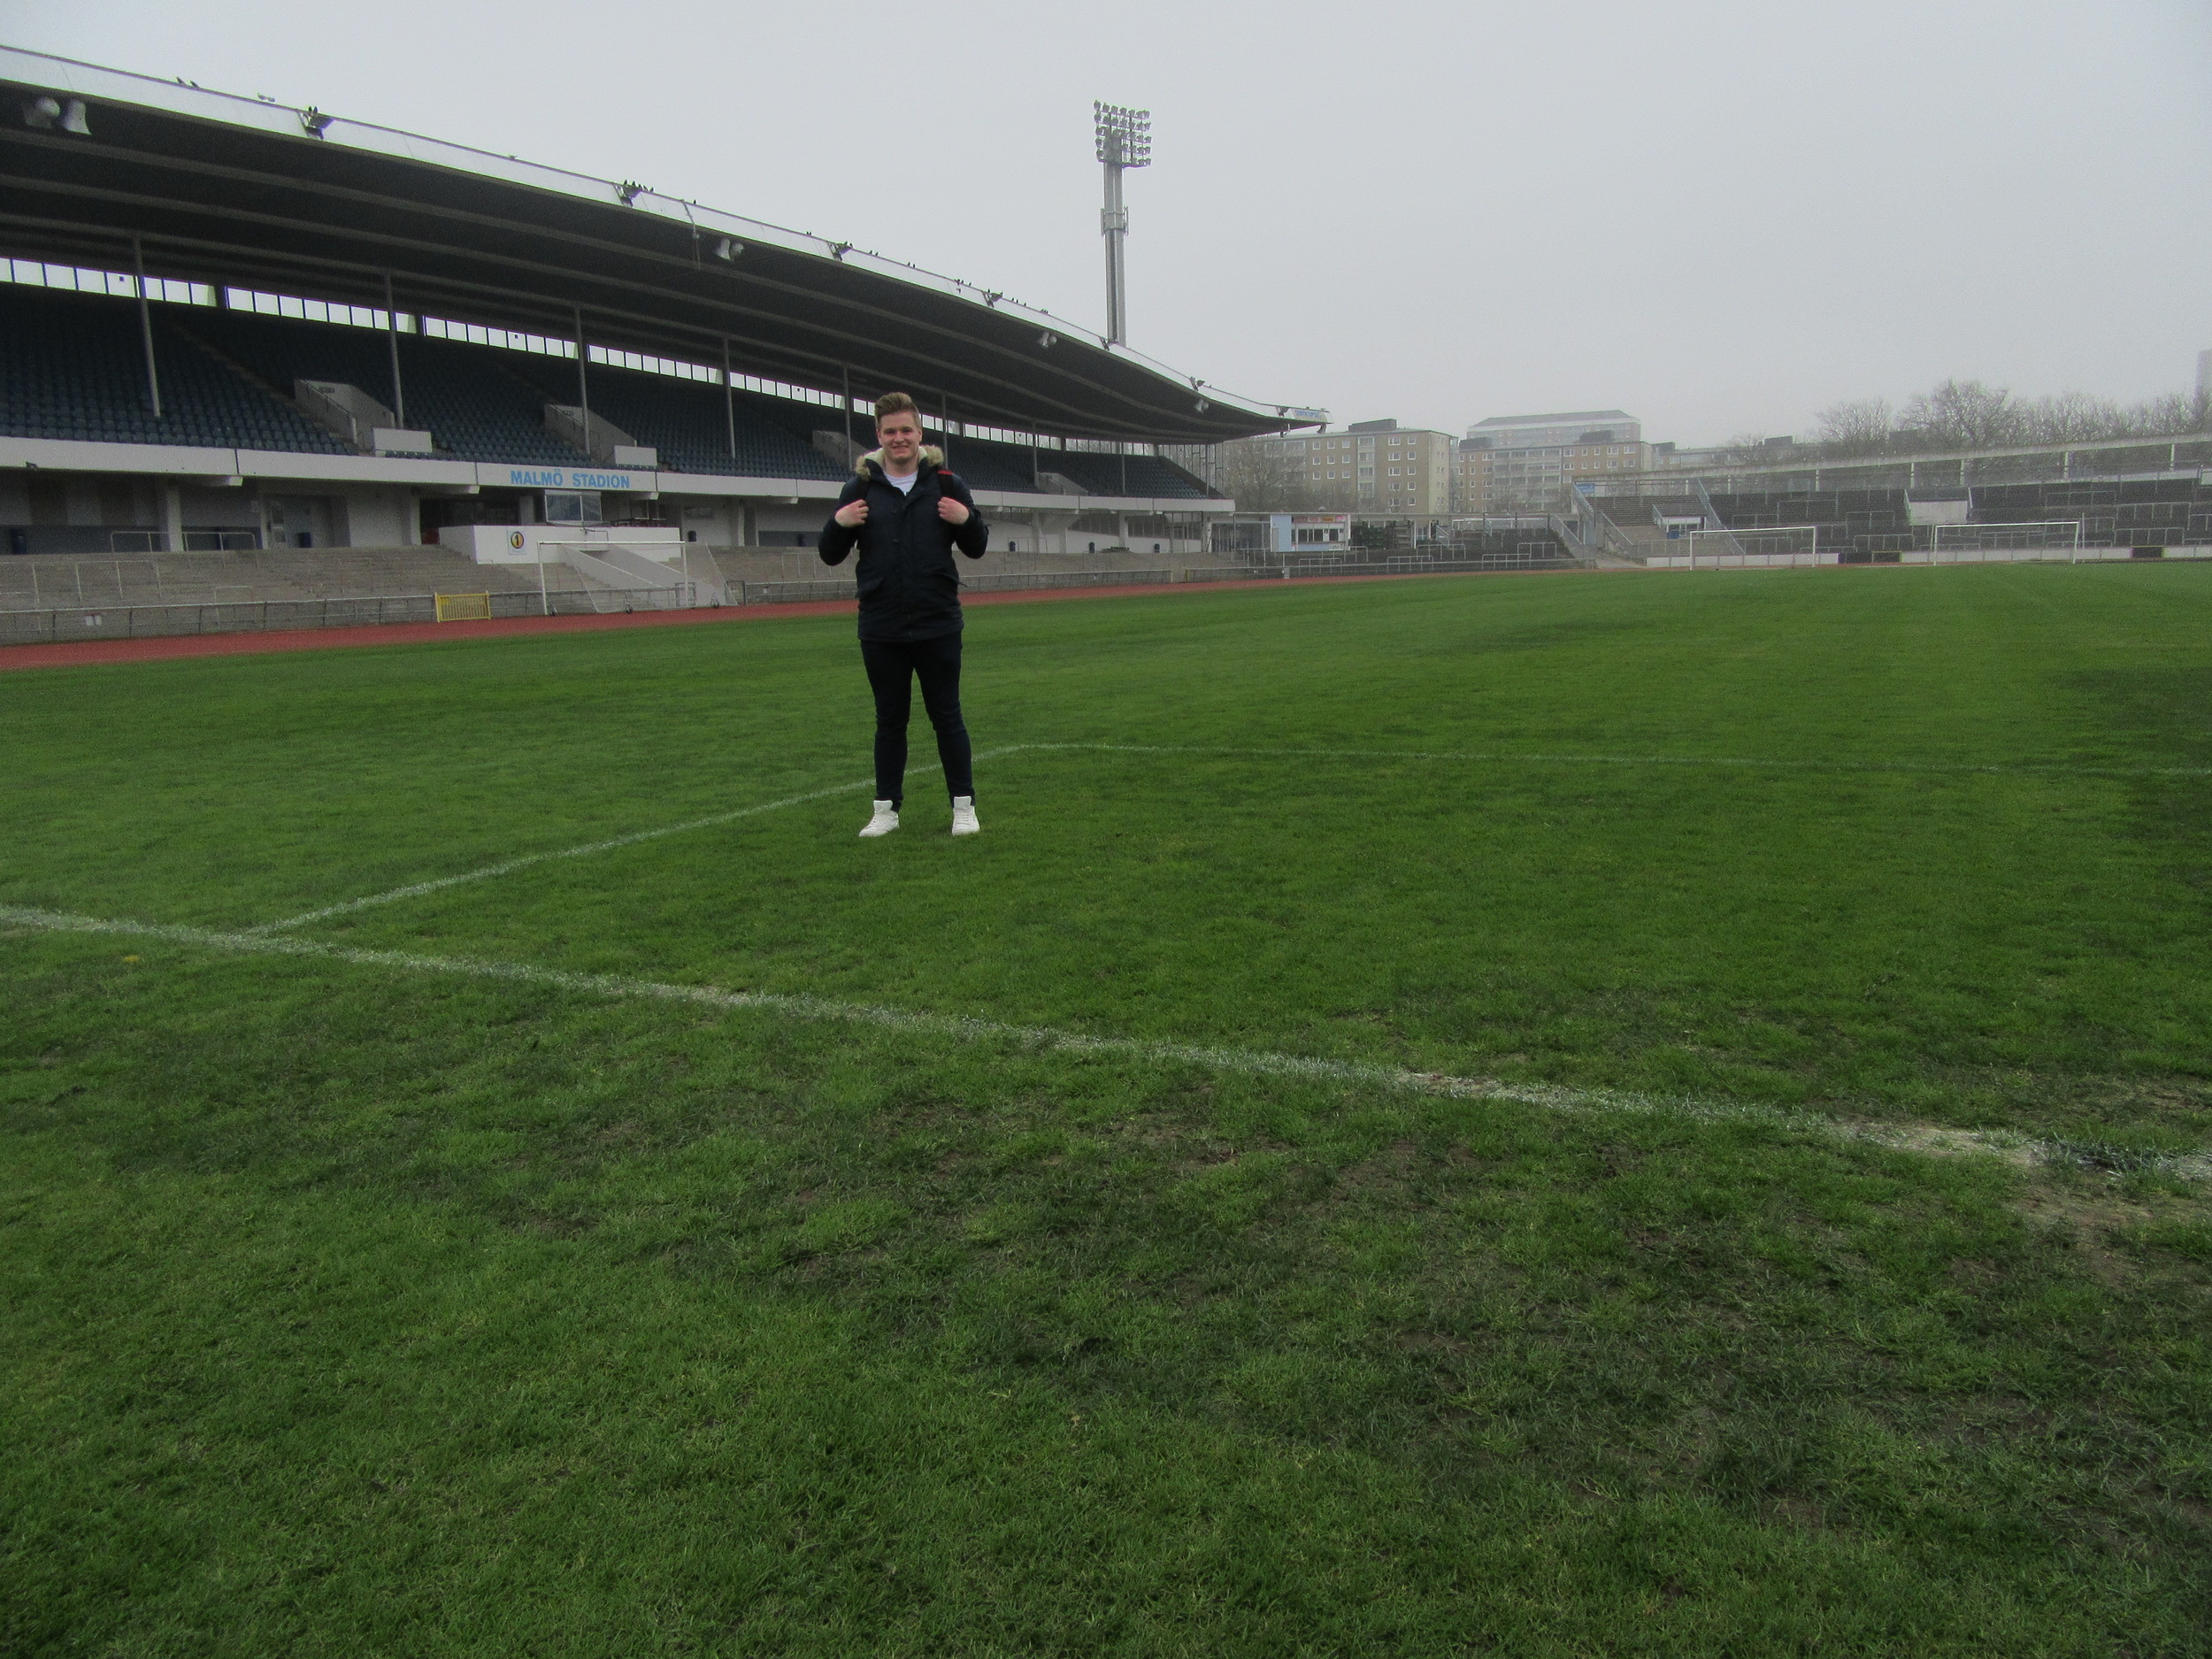 Getting on the pitch at Malmö Stadion! I'll probably explain this in a later blog post.